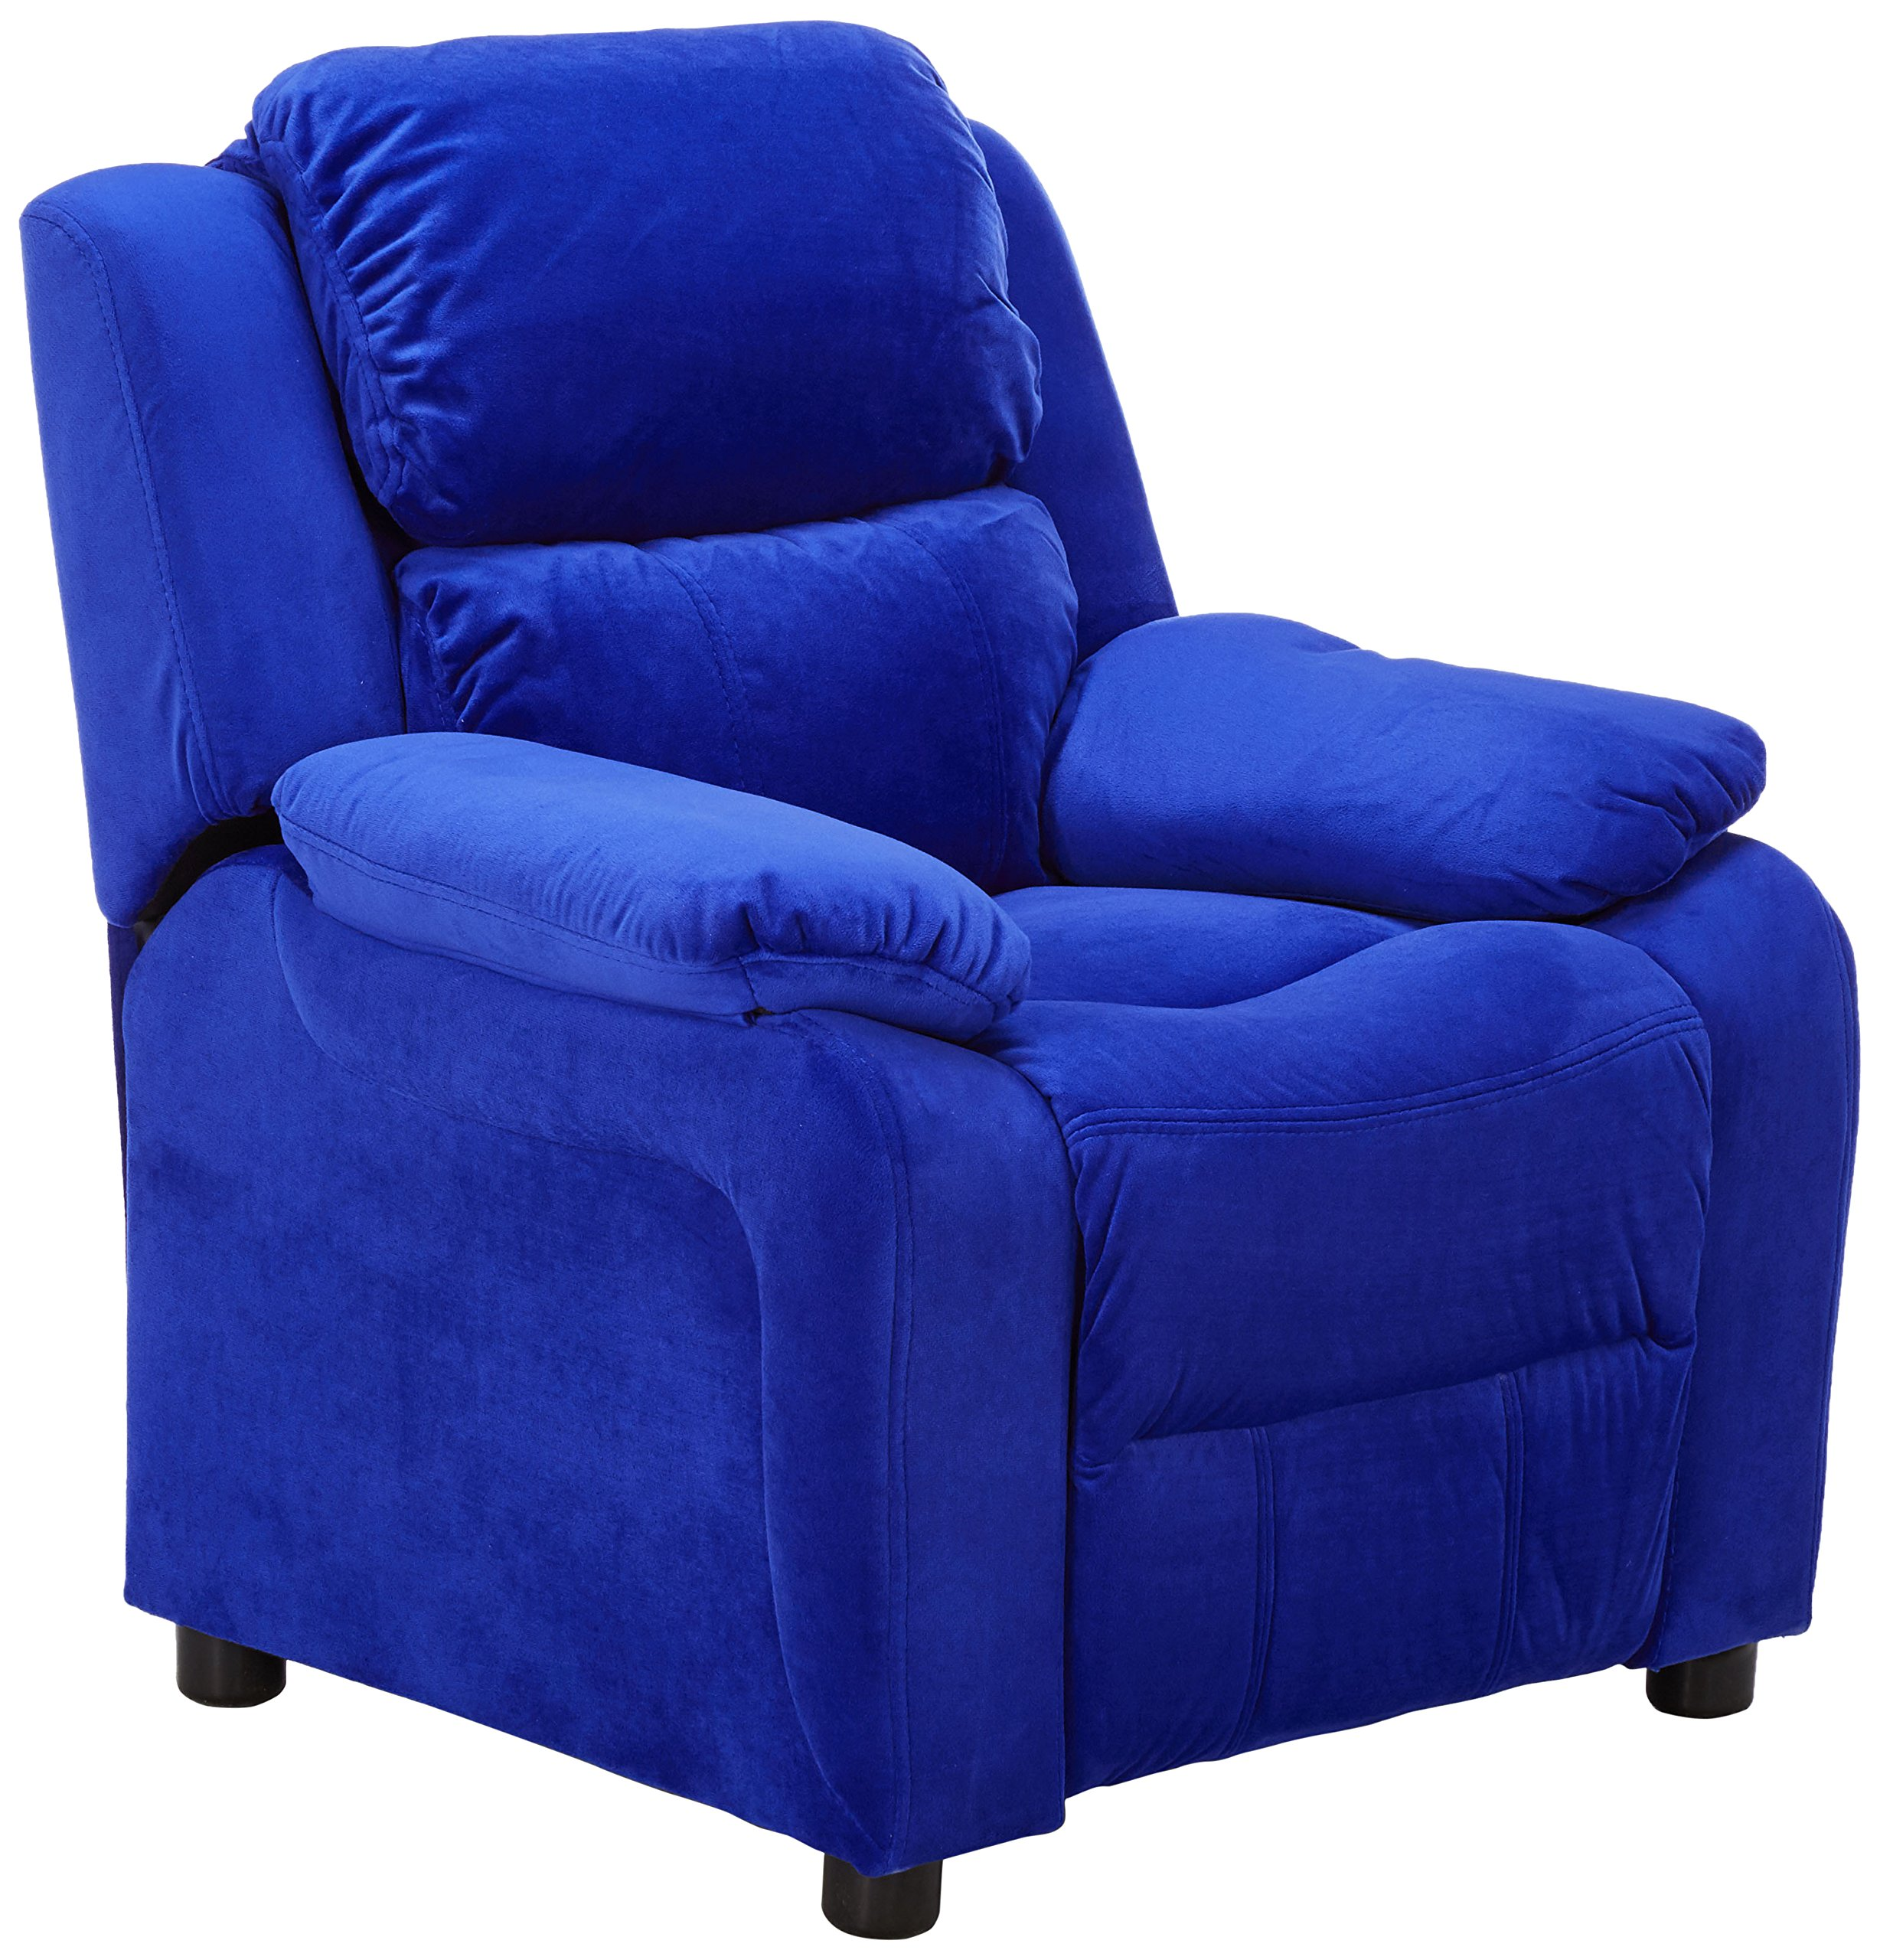 Flash Furniture Deluxe Padded Contemporary Blue Microfiber Kids Recliner with Storage Arms by Flash Furniture